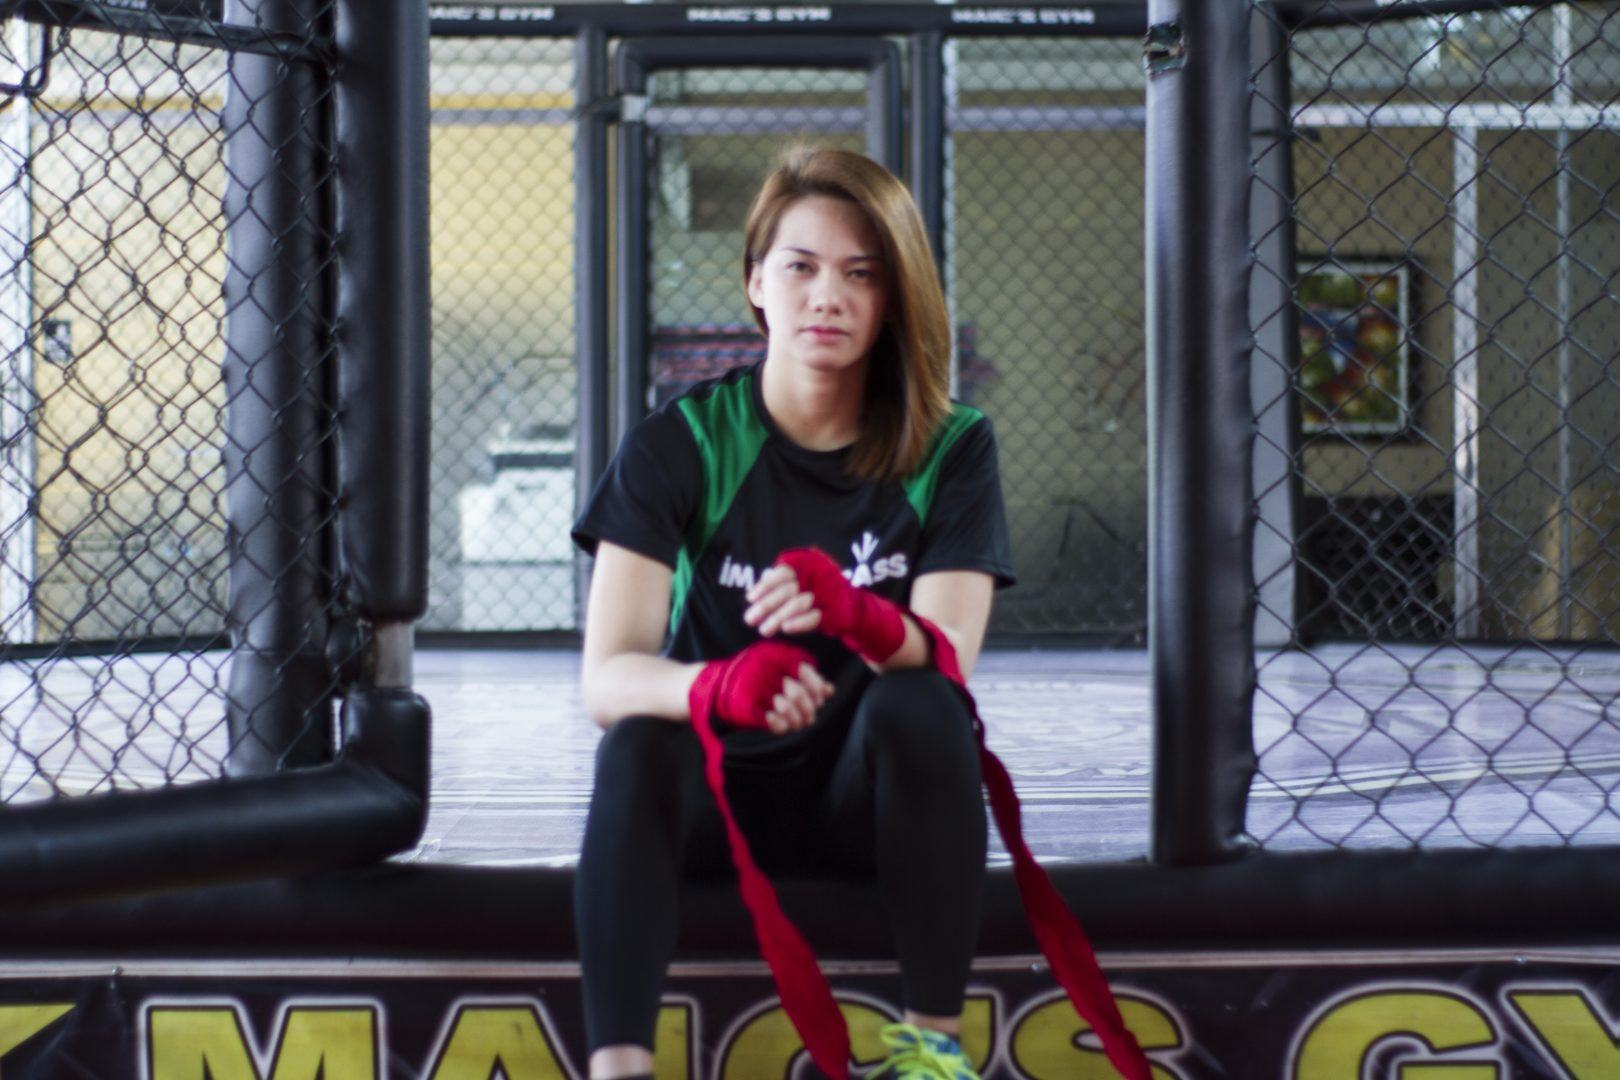 This Rebel is an authentic martial artist | Talk Pinas Blog